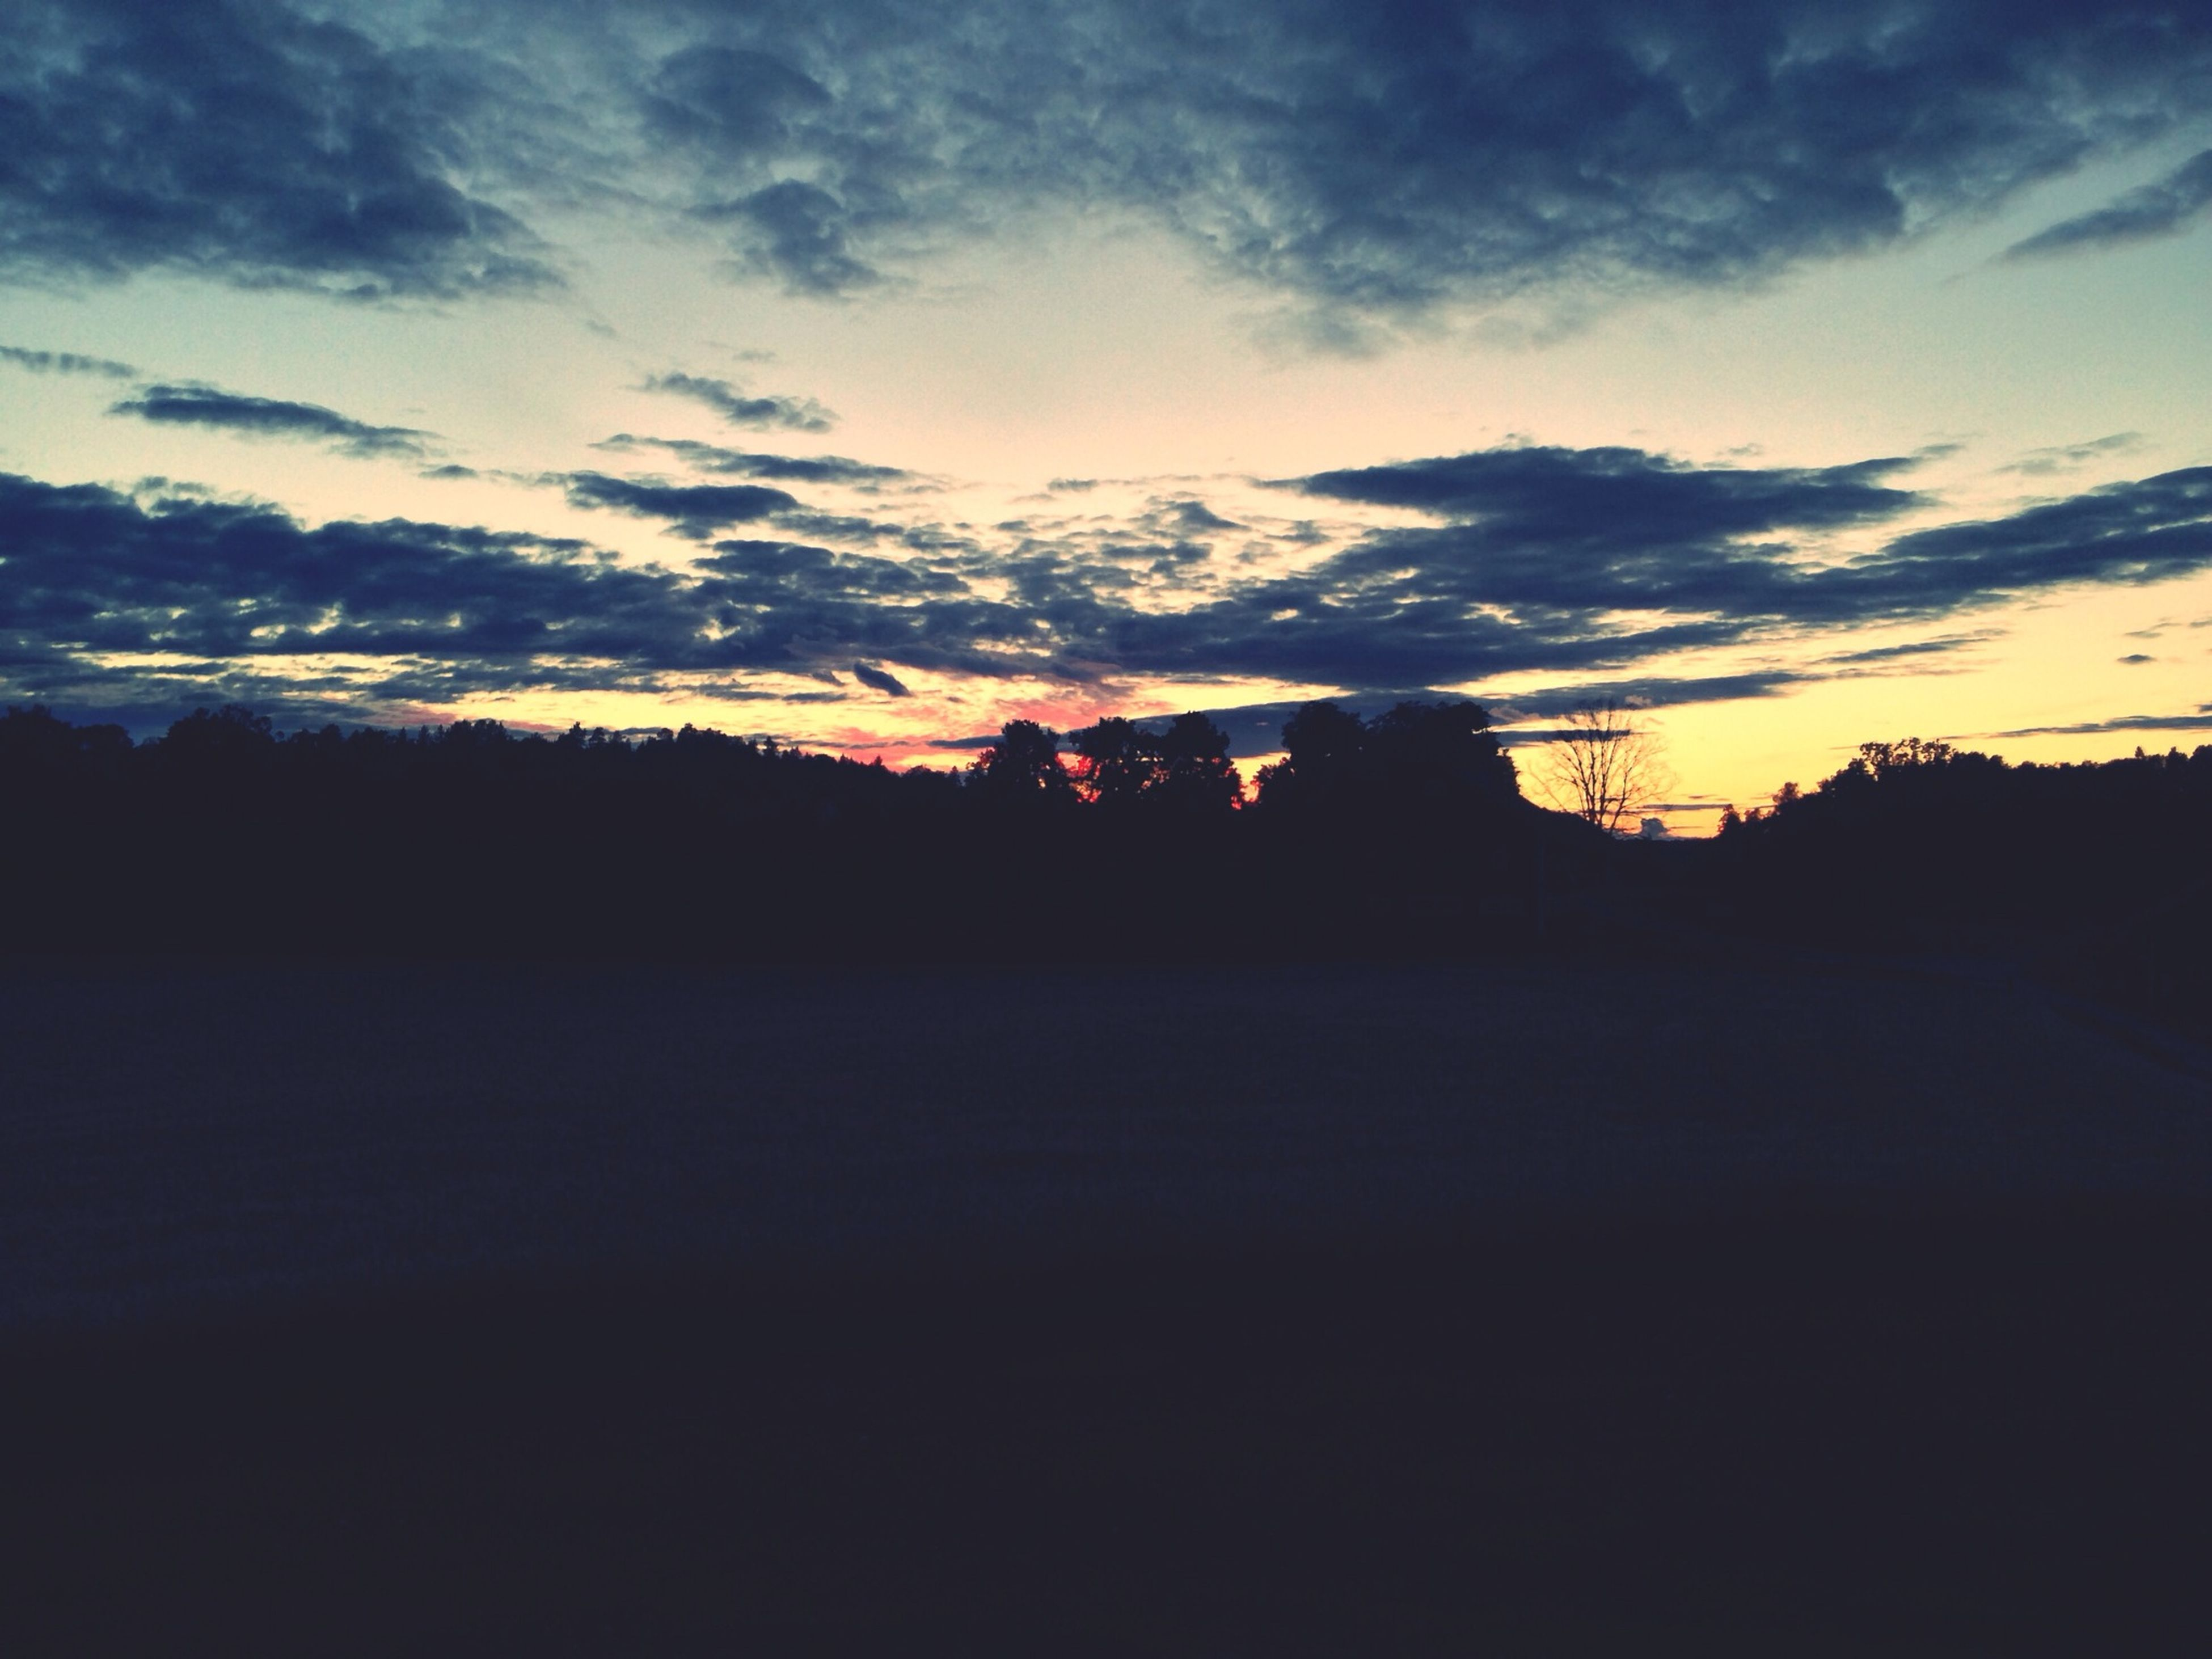 sunset, silhouette, sky, cloud - sky, orange color, tranquility, tranquil scene, scenics, cloud, beauty in nature, landscape, dark, nature, tree, dusk, dramatic sky, built structure, outdoors, idyllic, cloudy